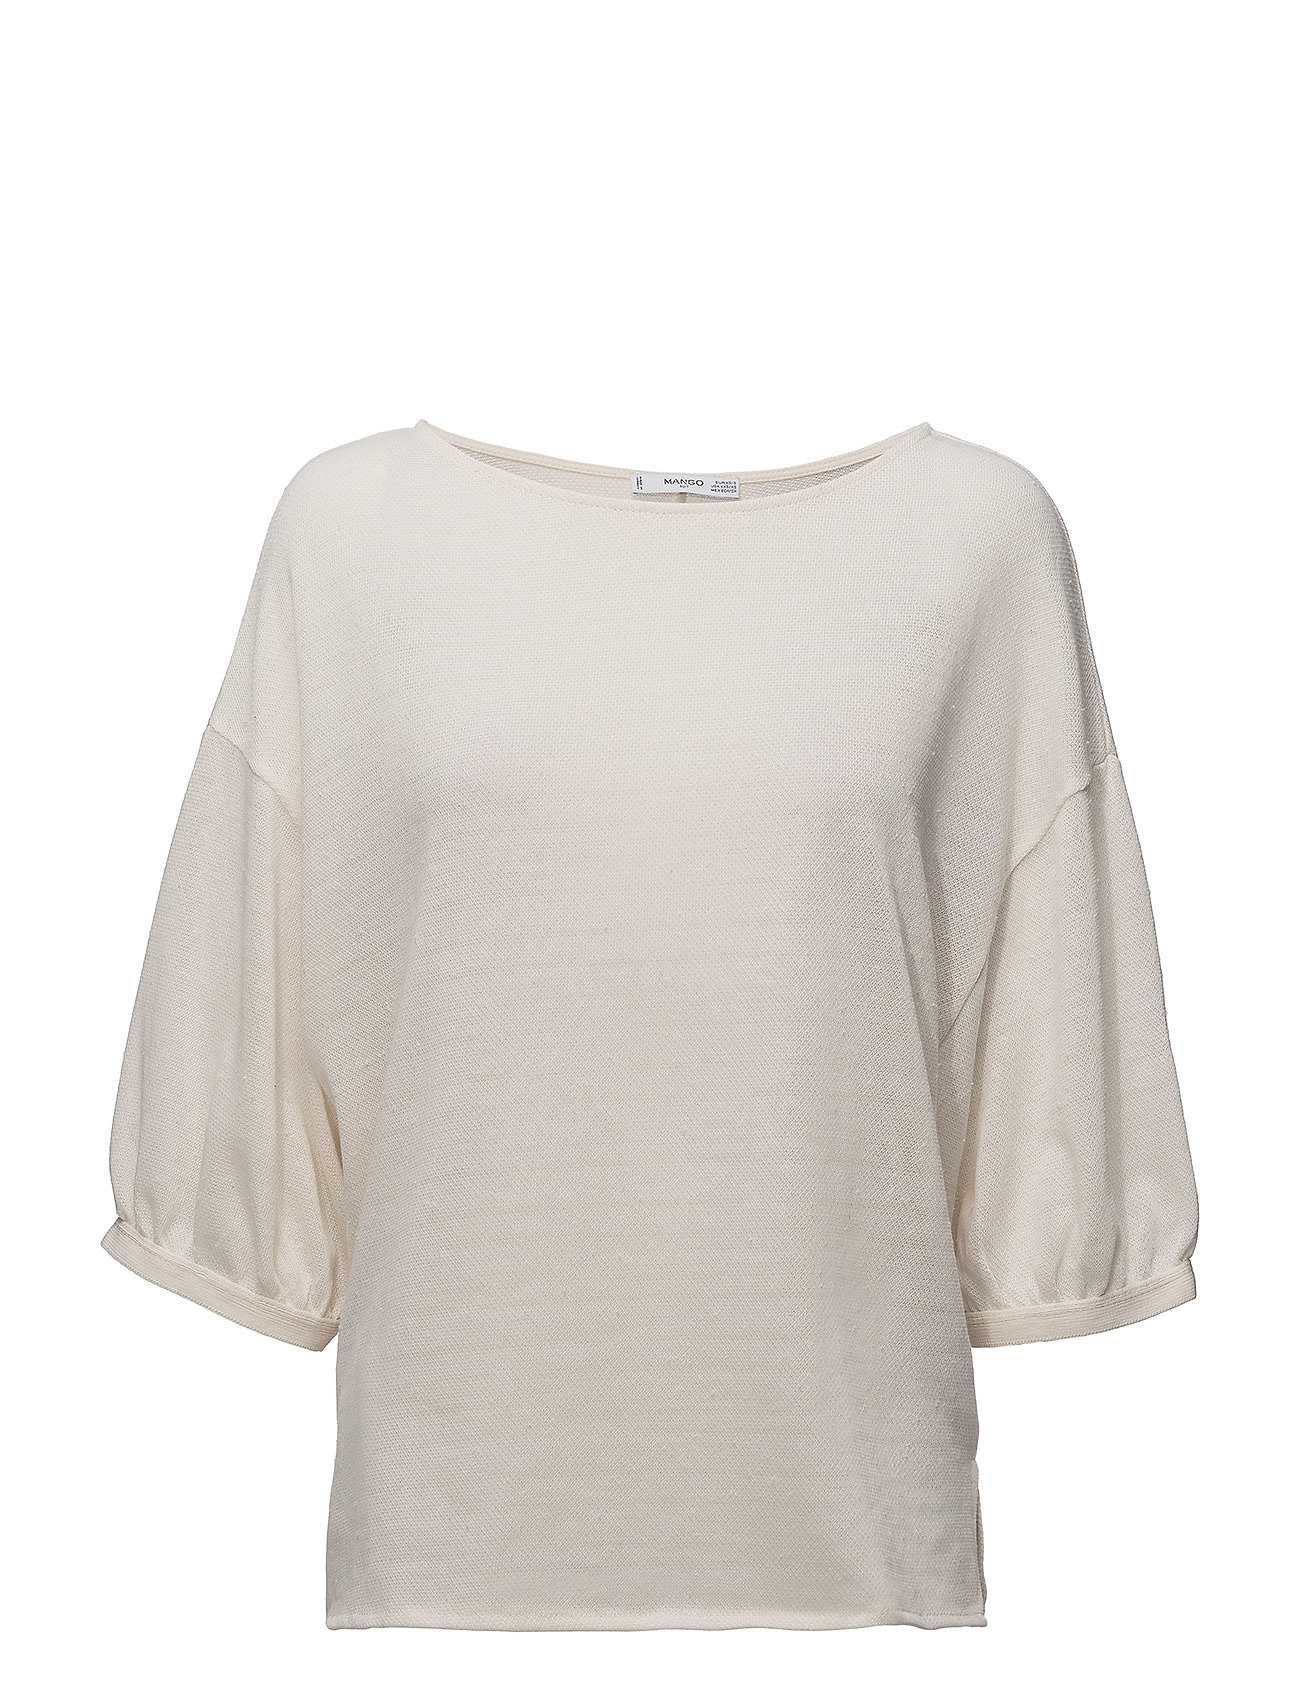 Image of Puffed Sleeves T-Shirt (2995282137)